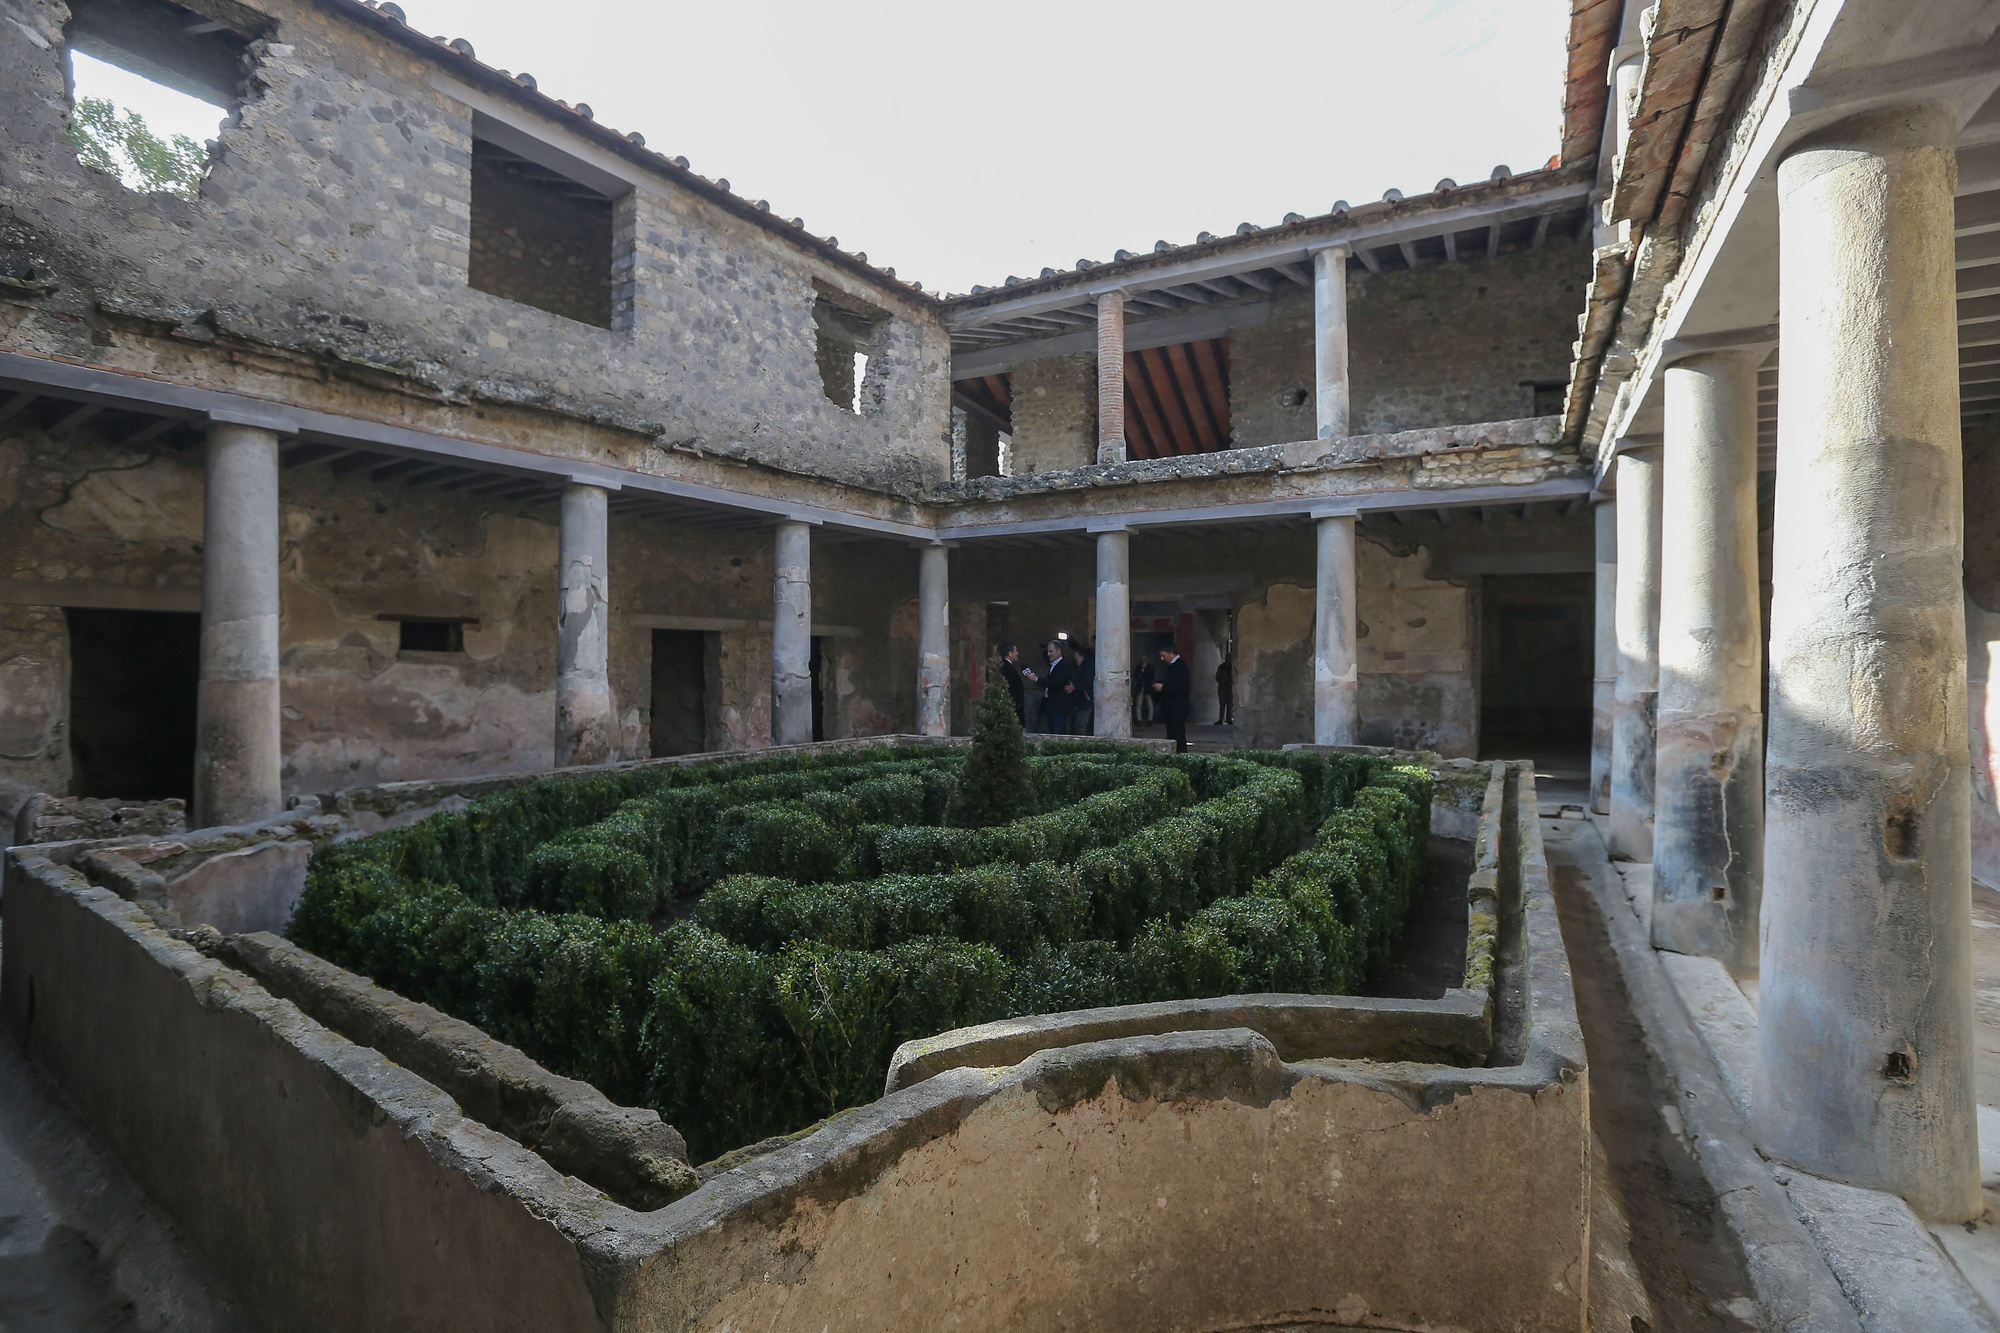 Villa des Amants à Pompéi, Getty Images